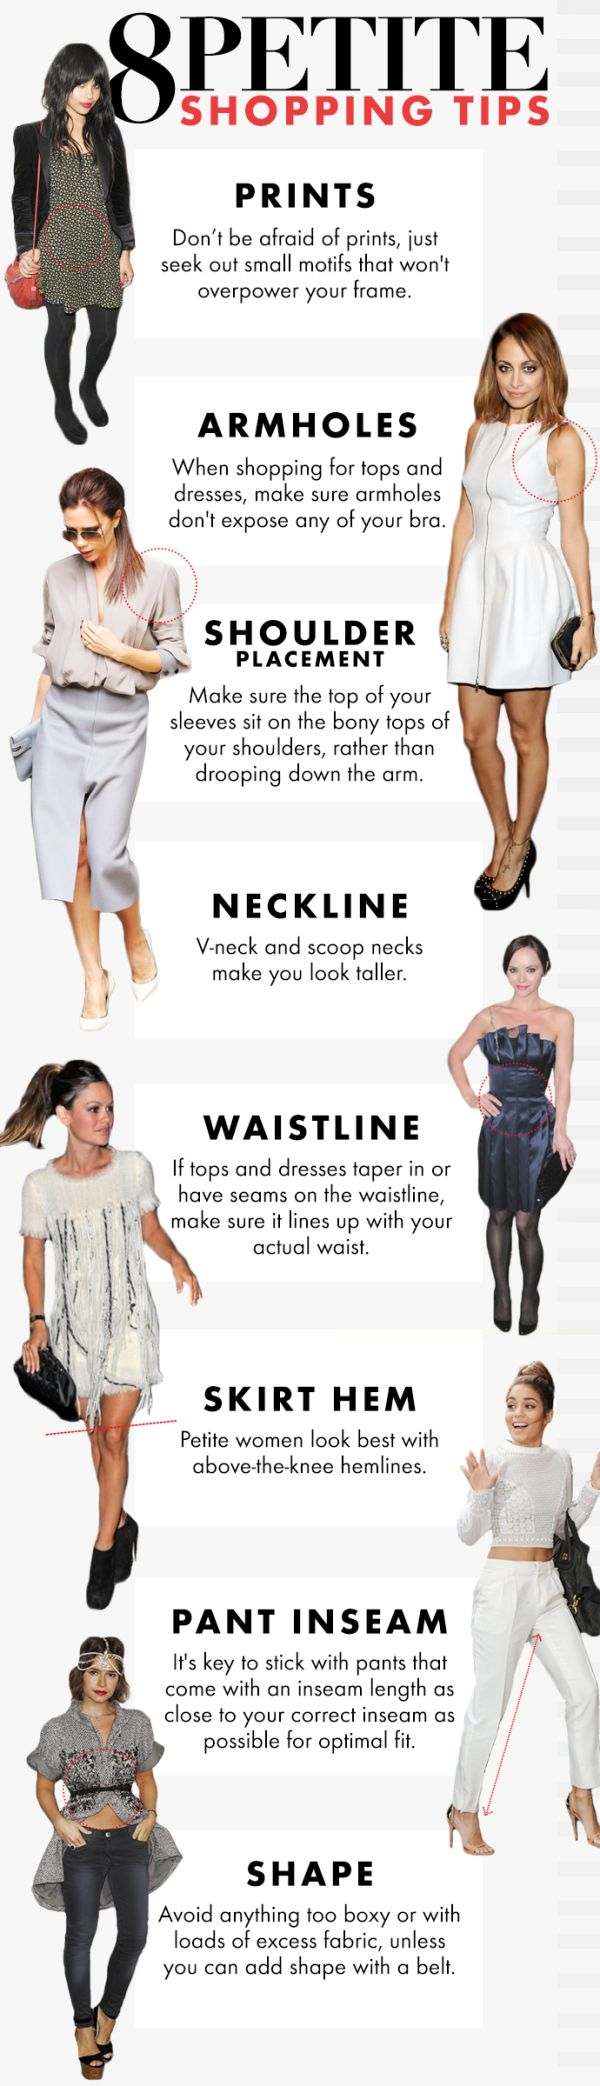 petite shopping tips How To Shop For Petite Clothes (Plus, A Pinterest Ready Guide!)